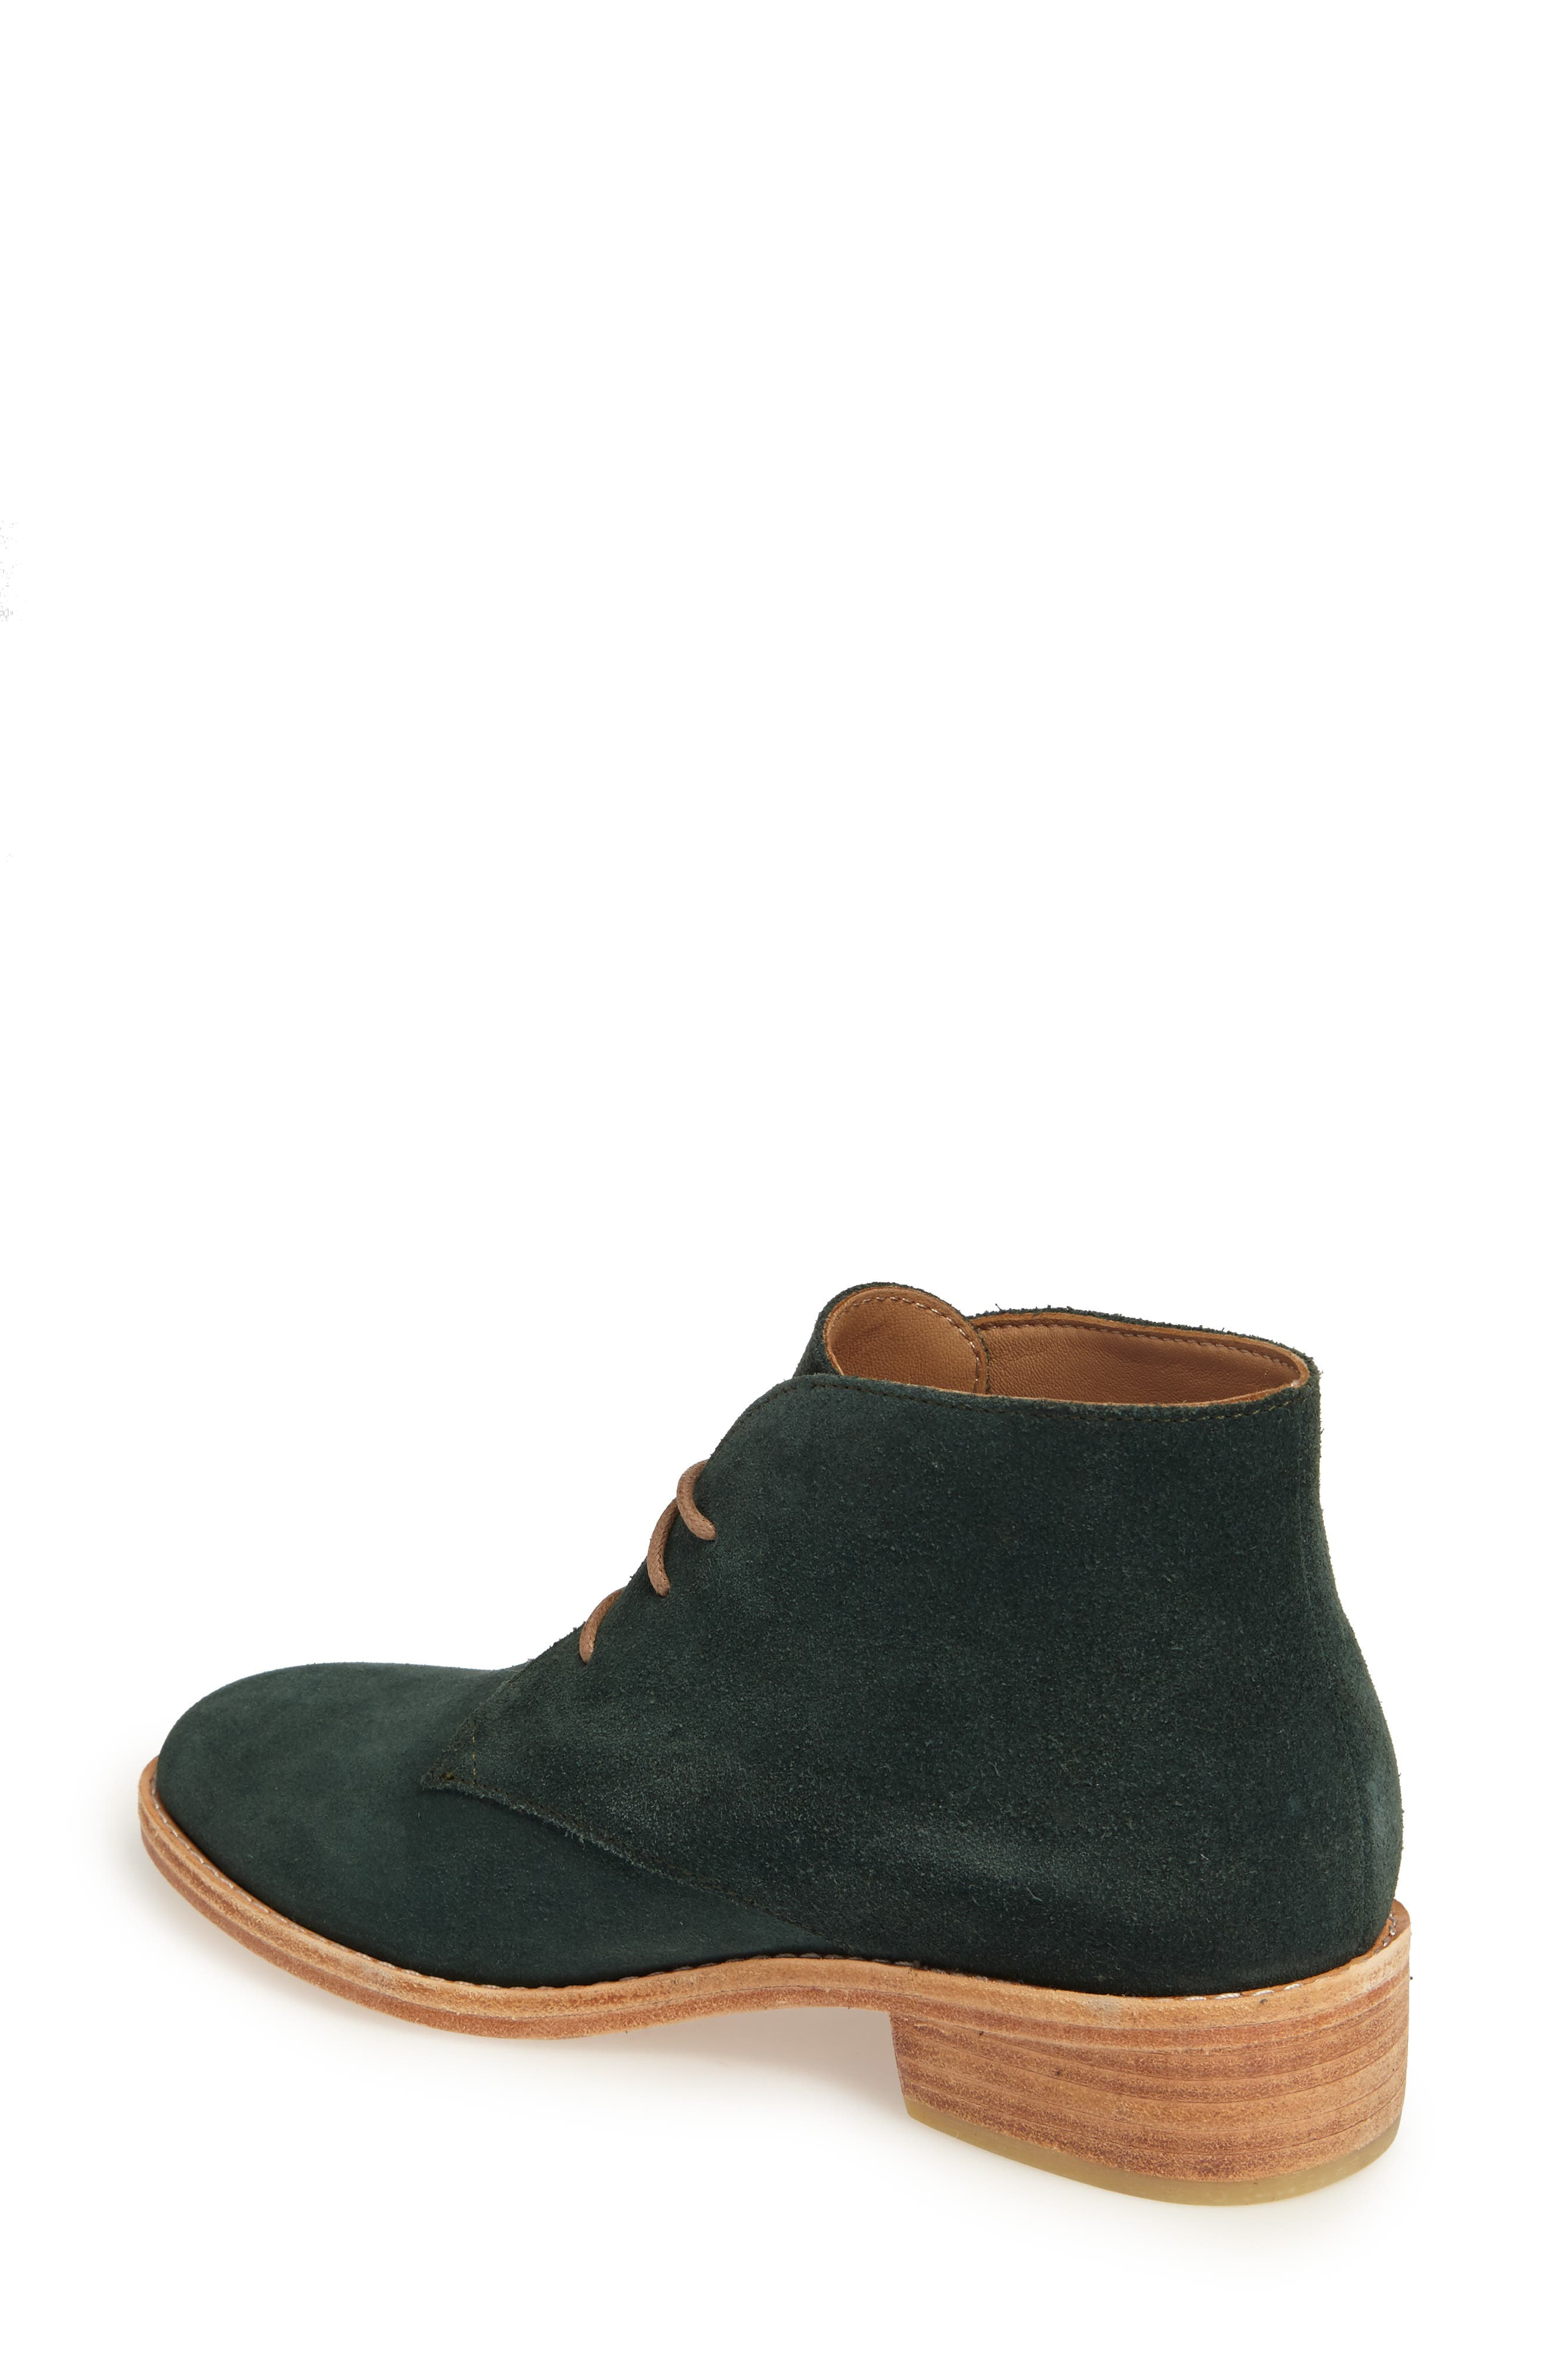 Manuela Chukka Boot,                             Alternate thumbnail 2, color,                             Forest Green Suede